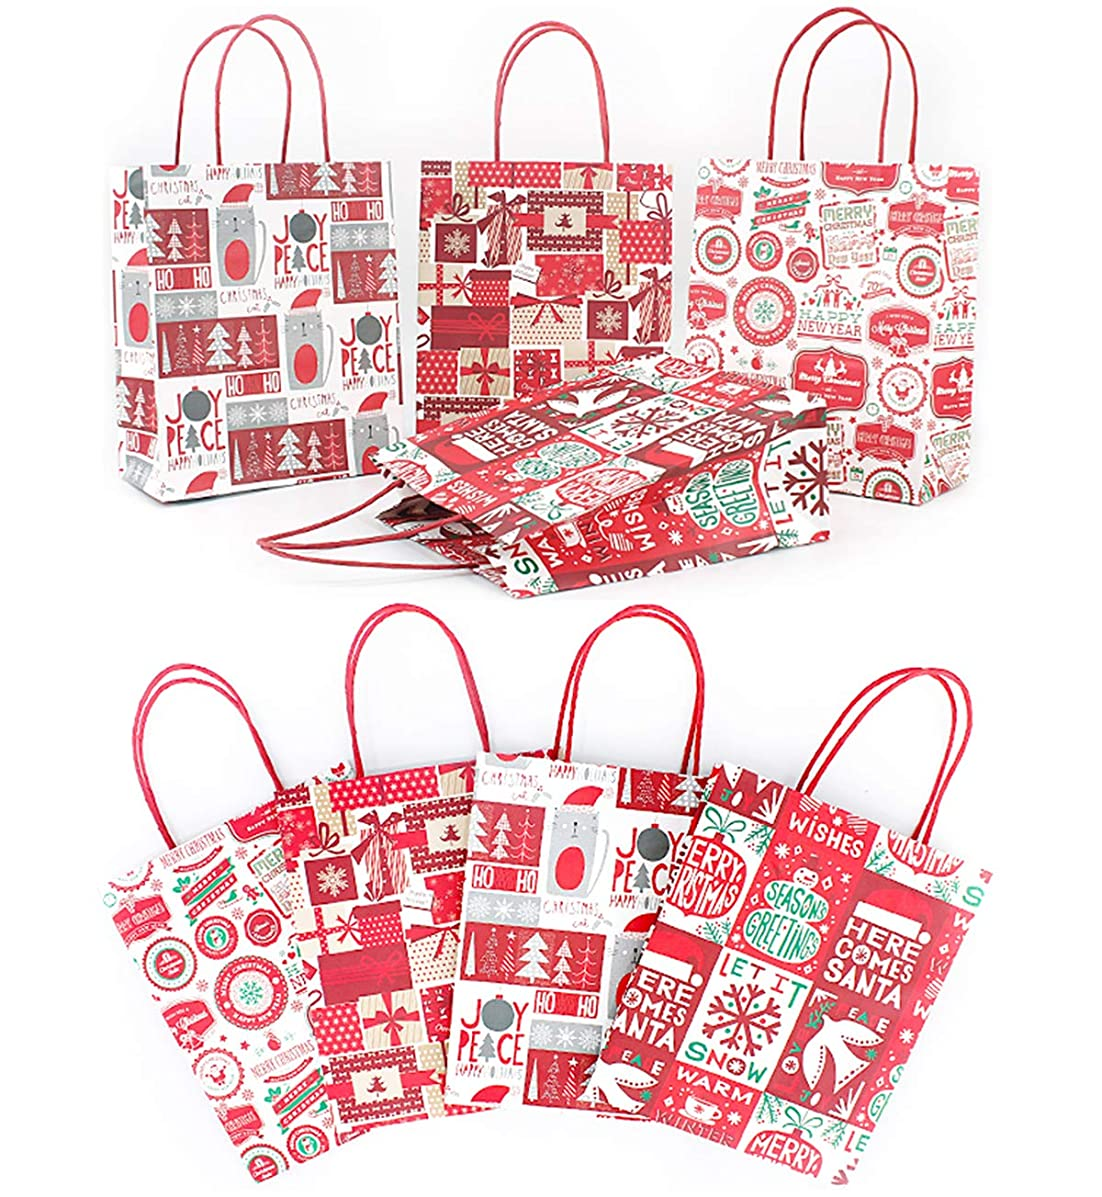 8Pcs Christmas Kraft Gift Bags with Assorted Festive Designs & Patterns for Unique Kraft Holiday Paper Gift Bags Goody Bag, Xmas Gift Bags, Classrooms and Party Favors for Birthday, Weddings Presents